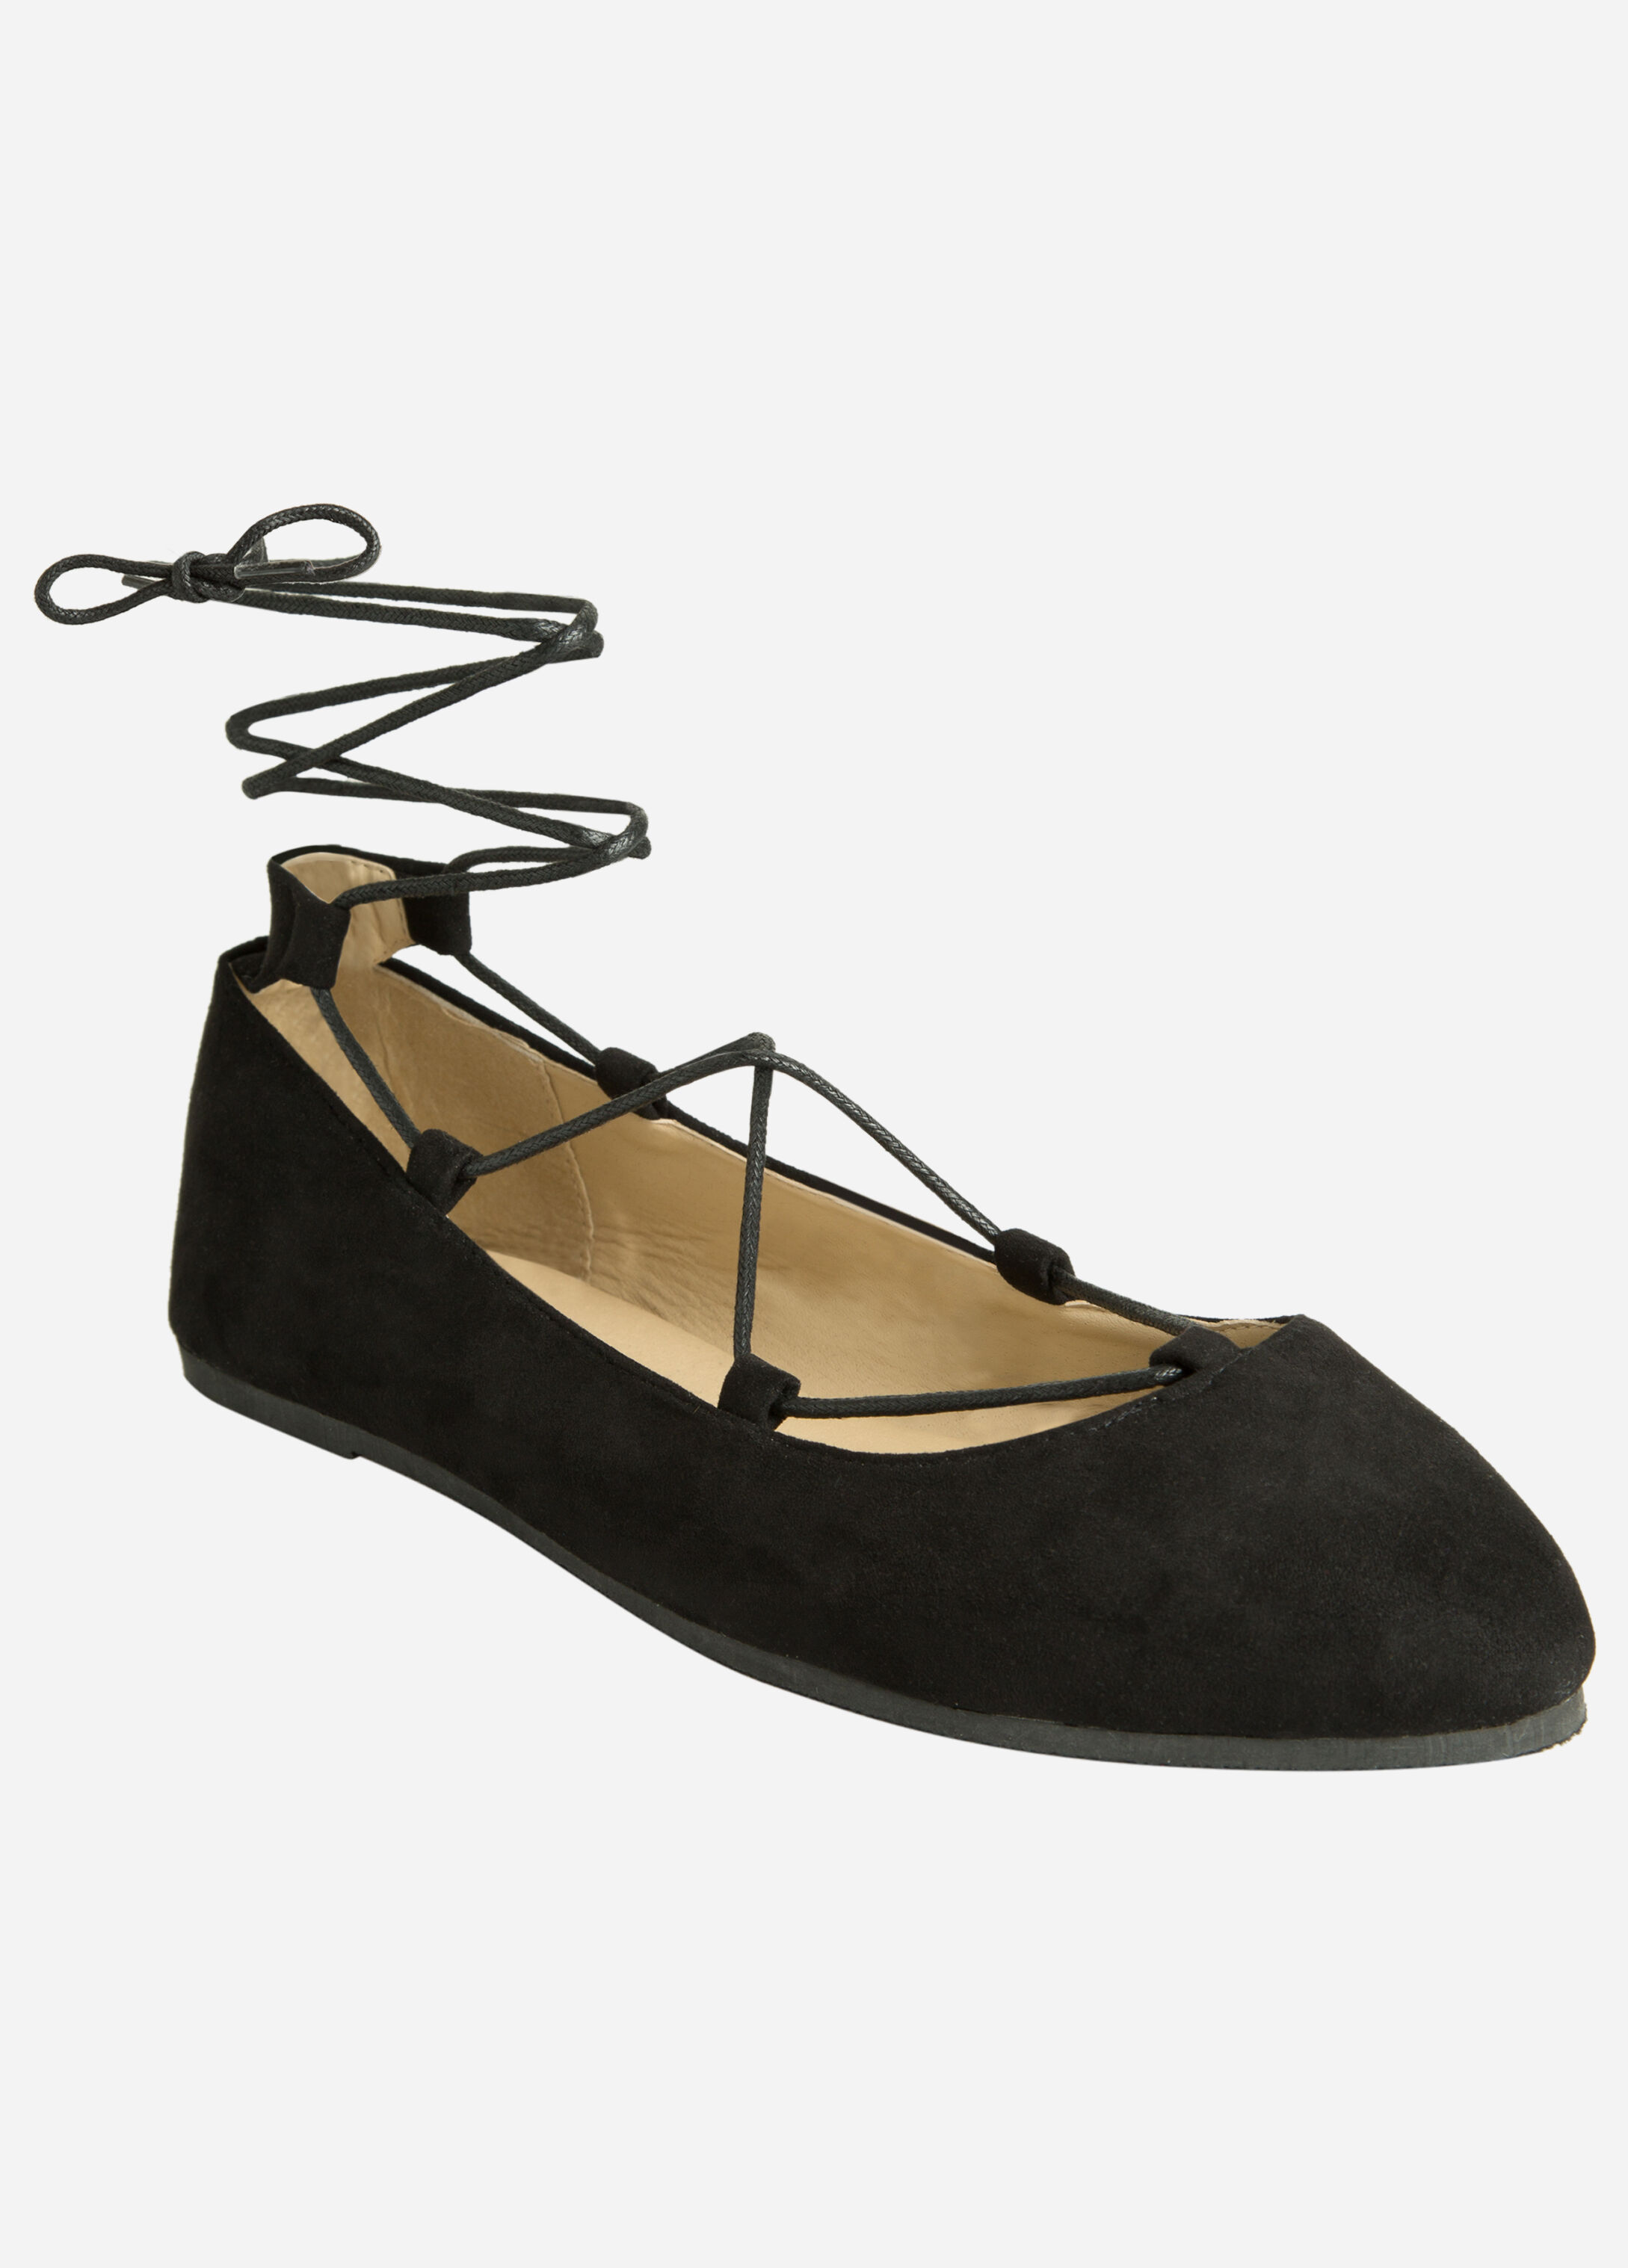 Lace Up Faux Suede Flat - Wide Width Black - Clearance